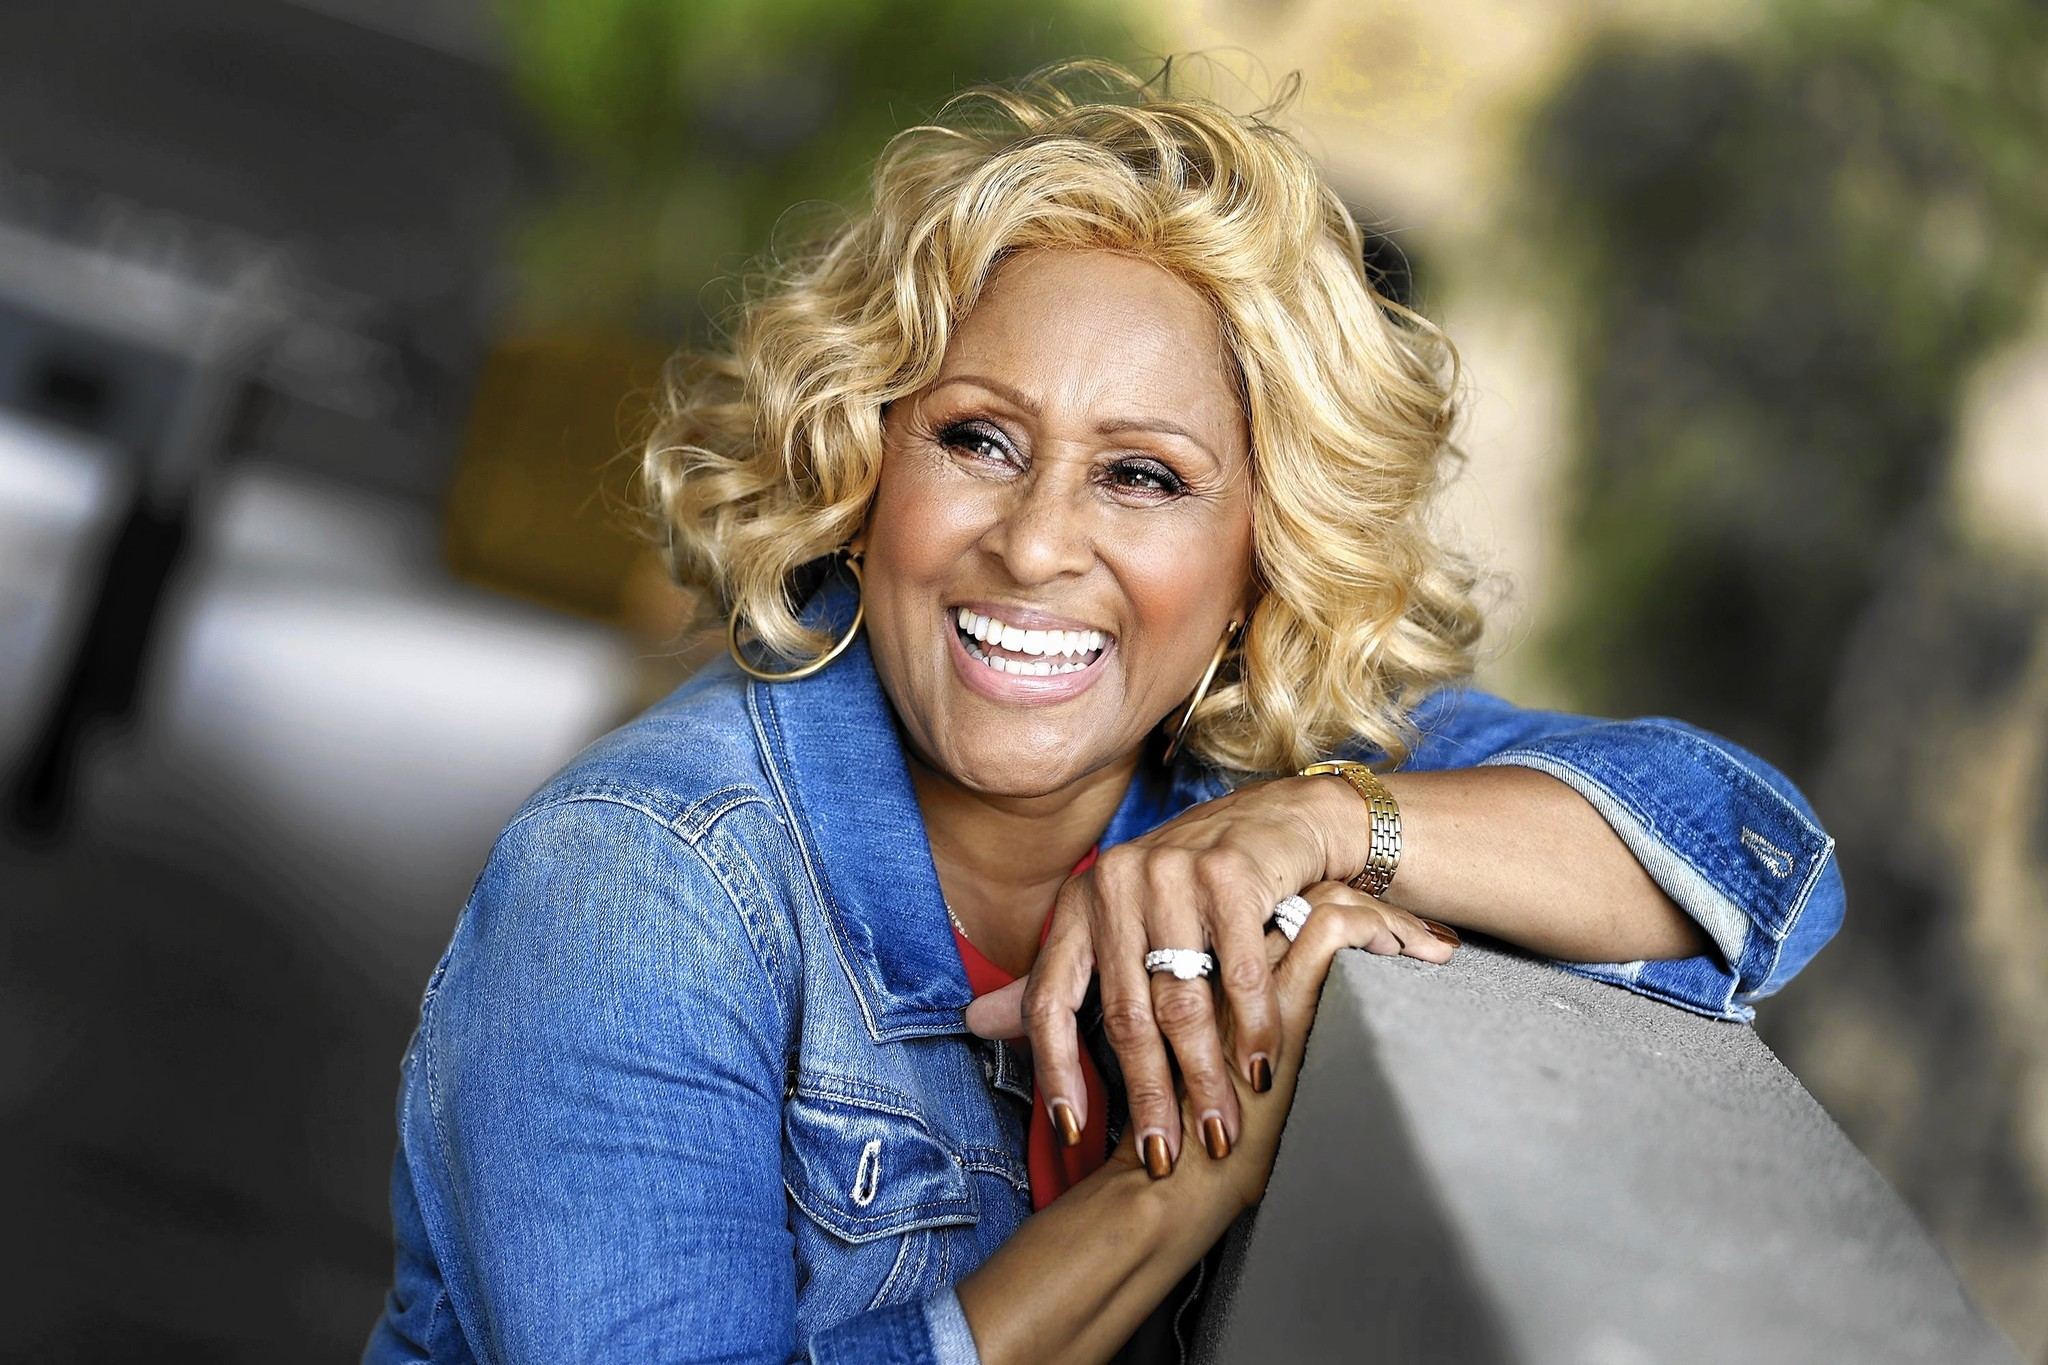 Top 25 van 2015: 14 Darlene Love – Introducing Darlene Love